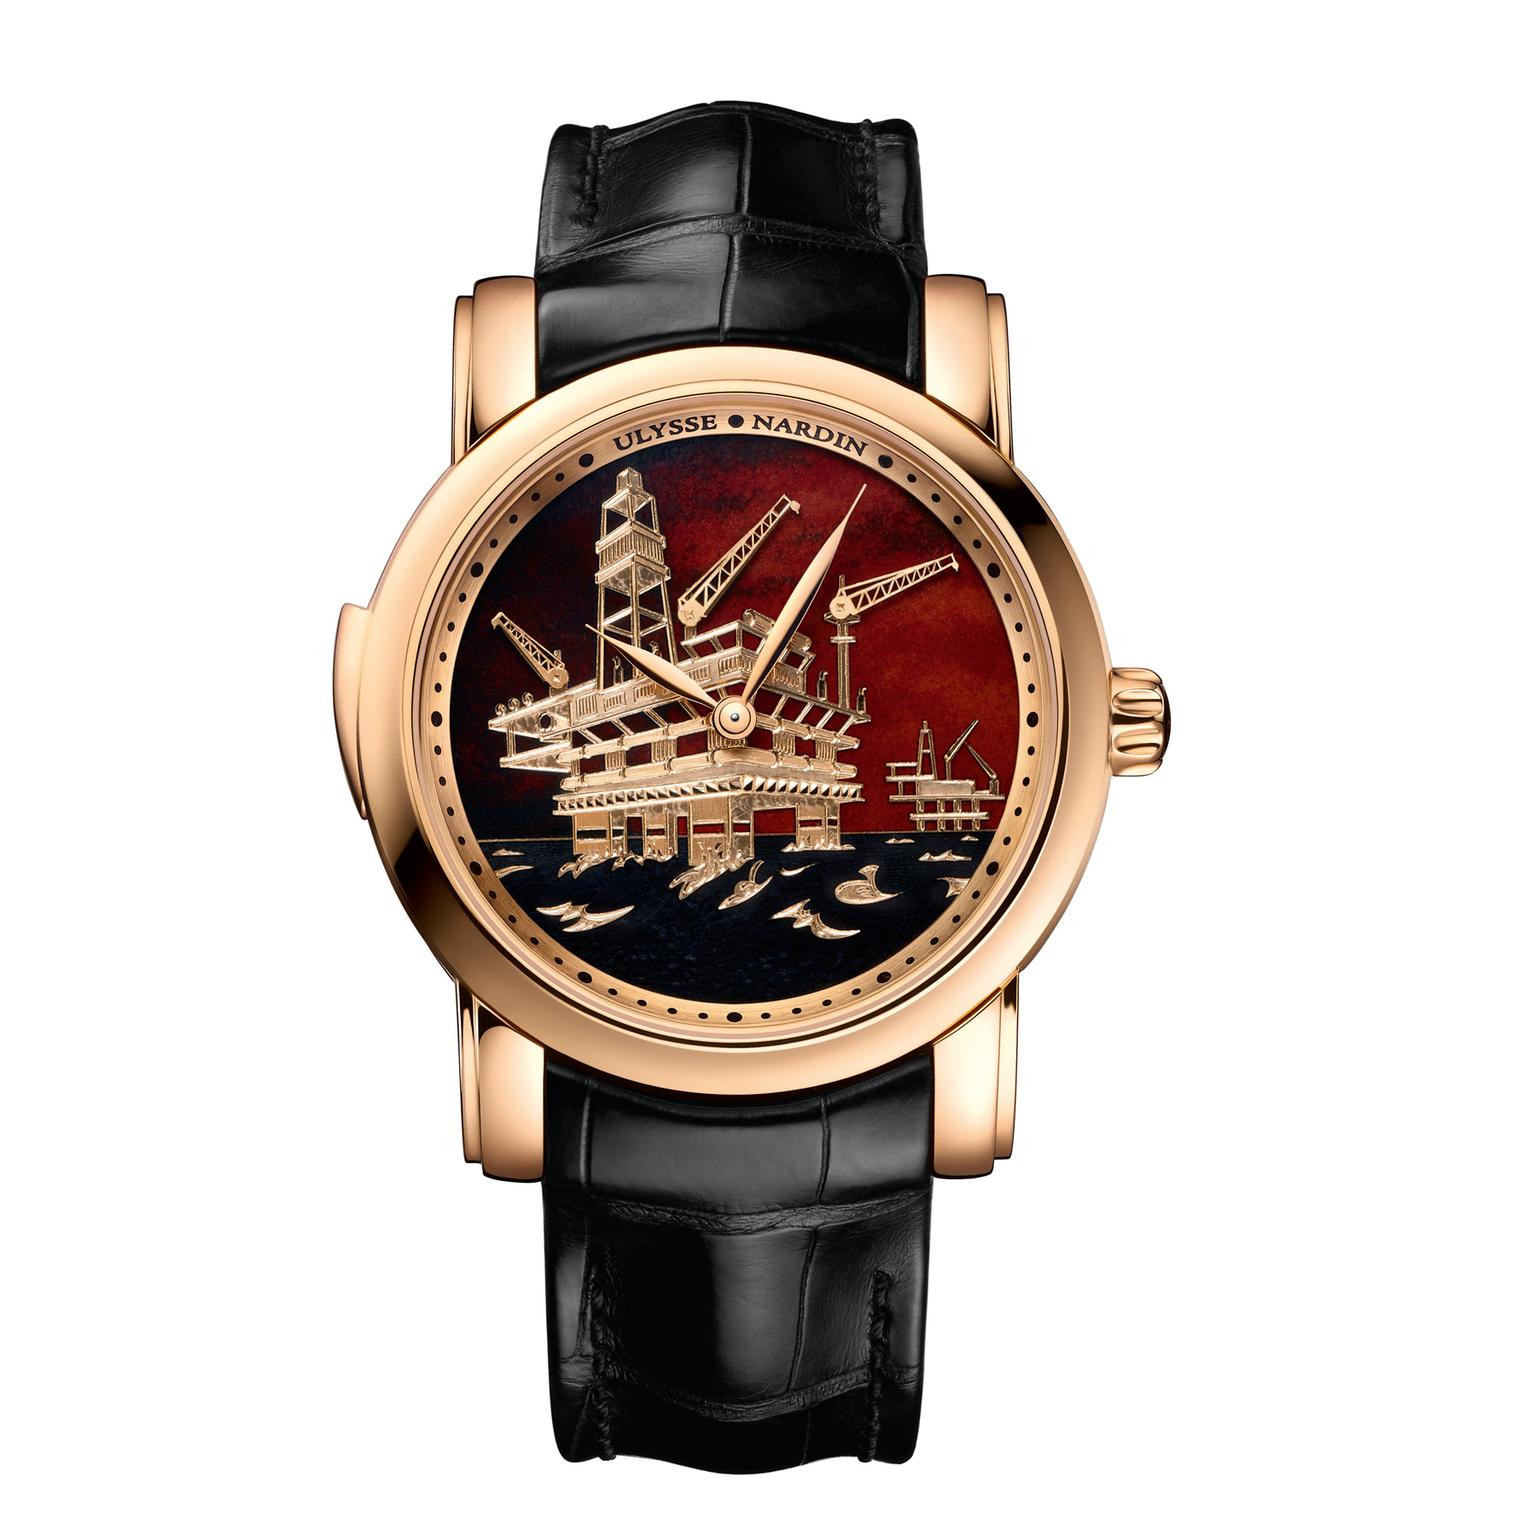 Ulysse Nardin North Sea Minute Repeater